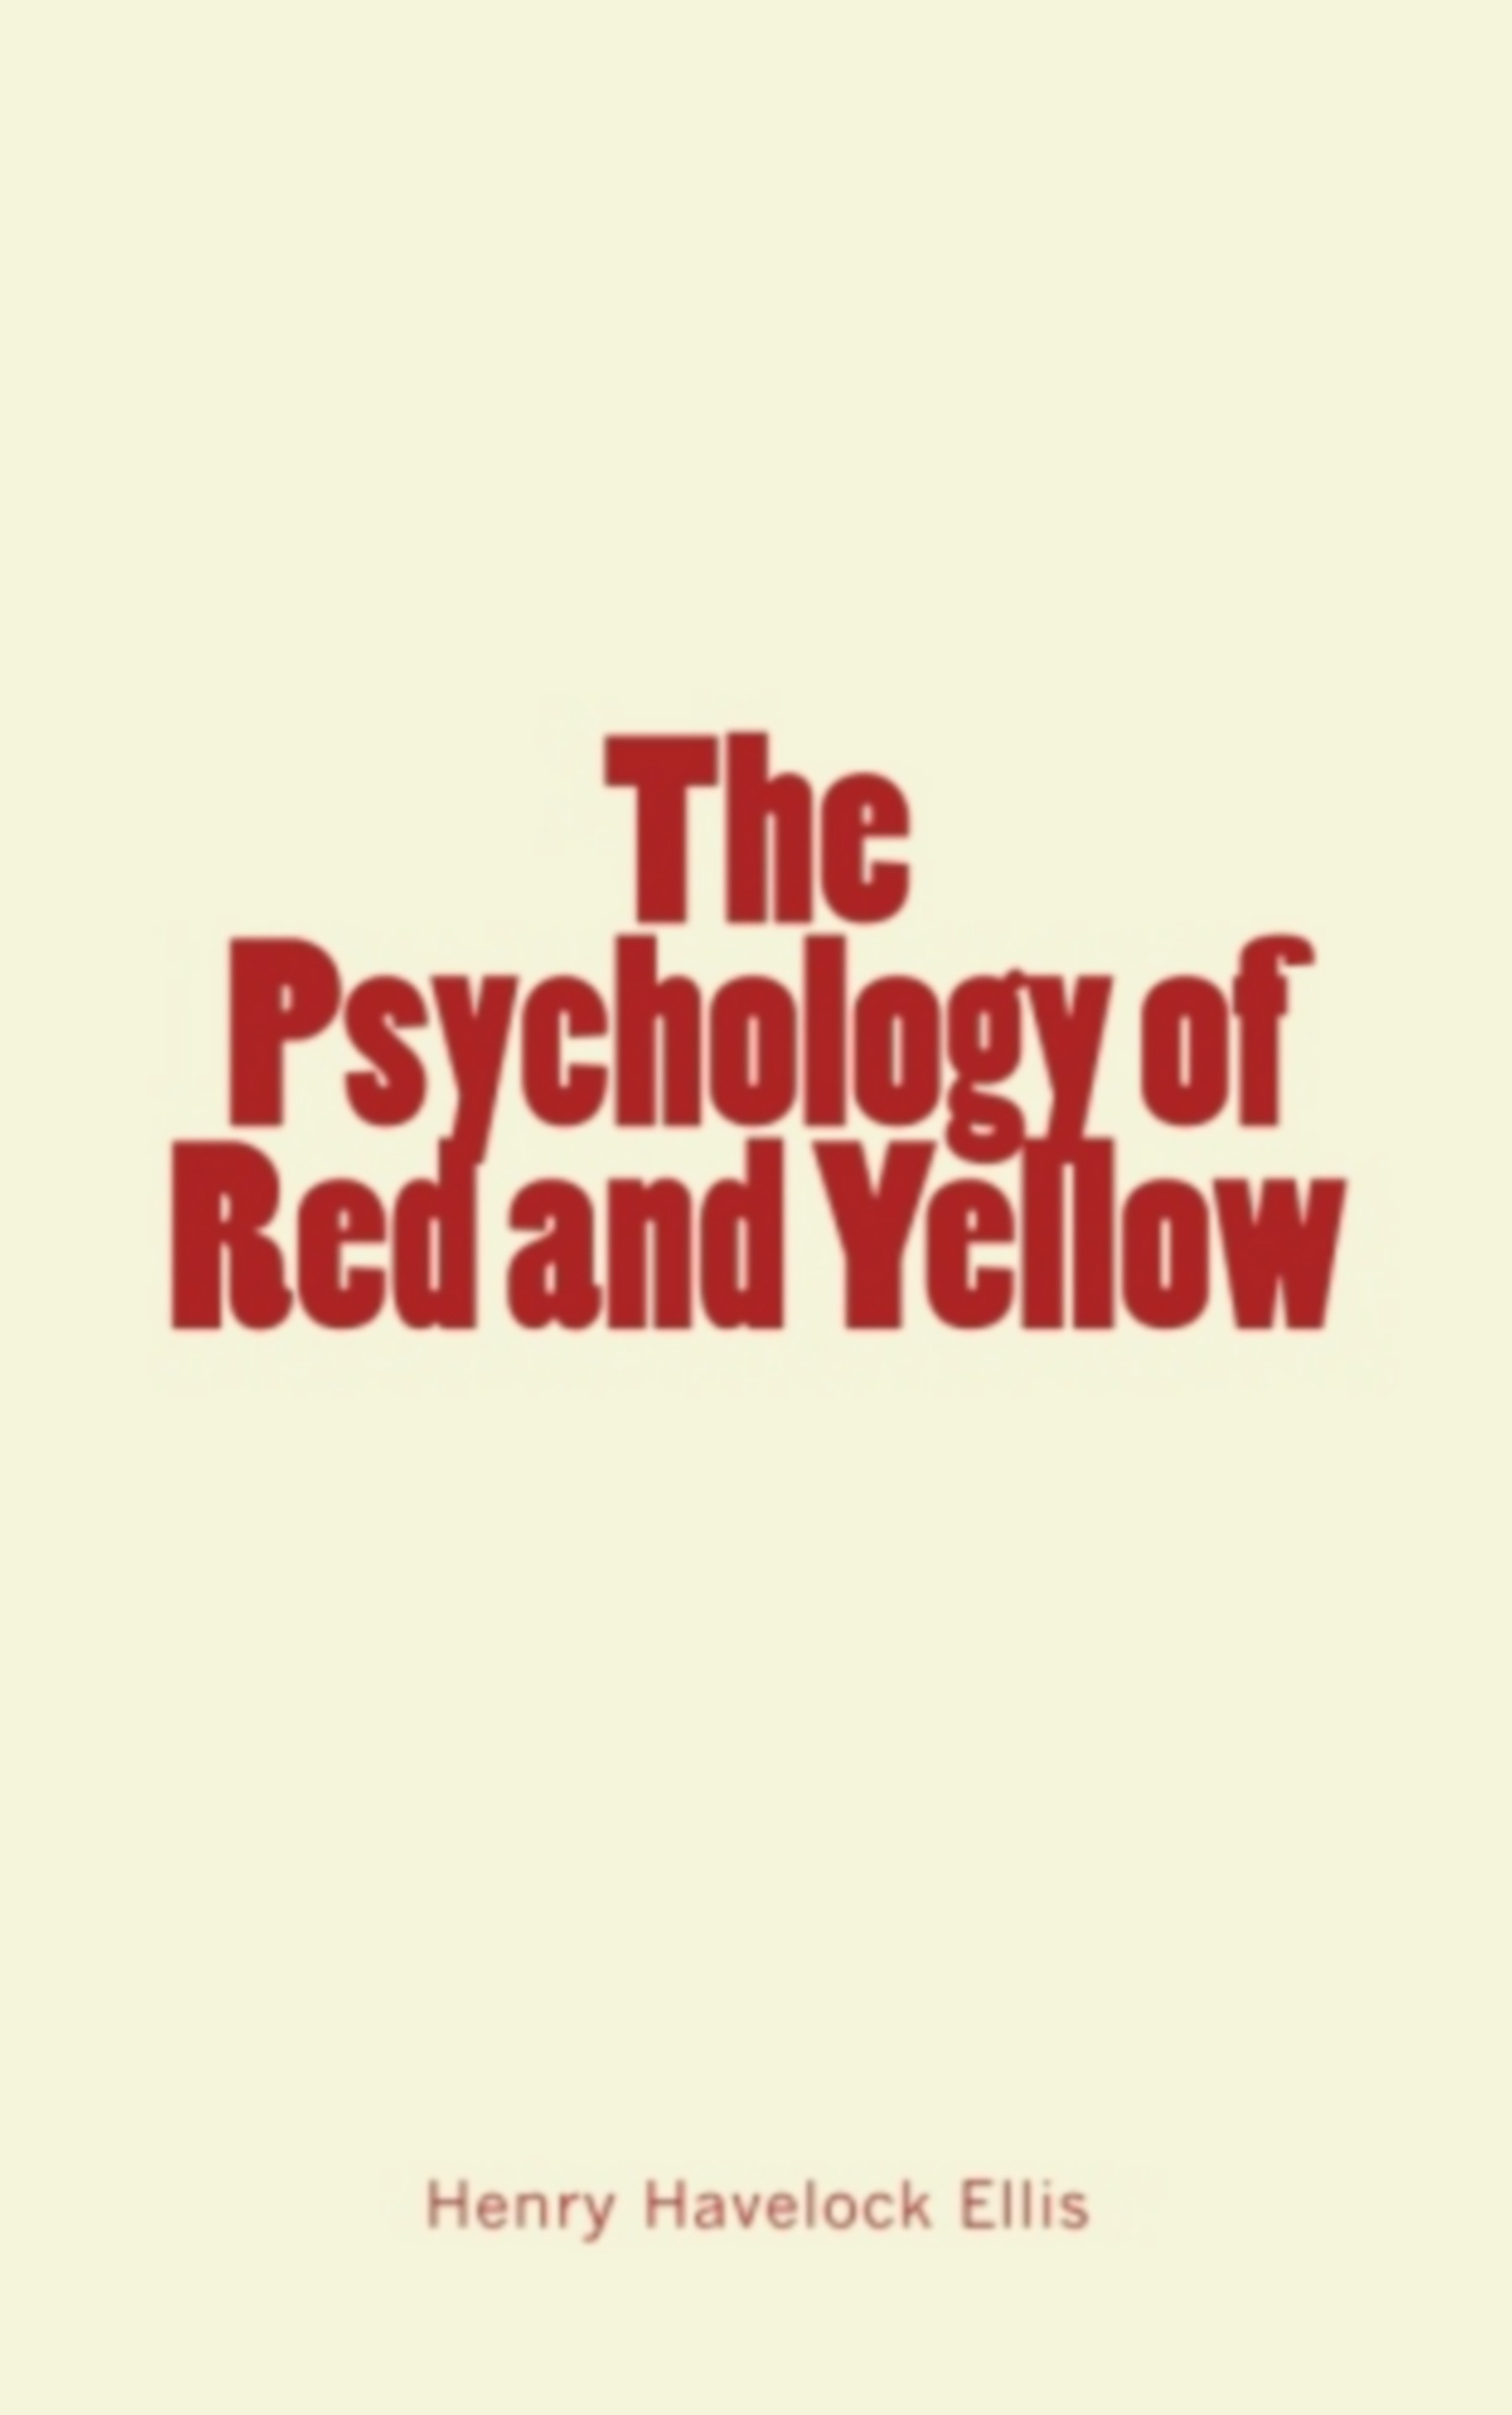 The Psychology of Red and Yellow